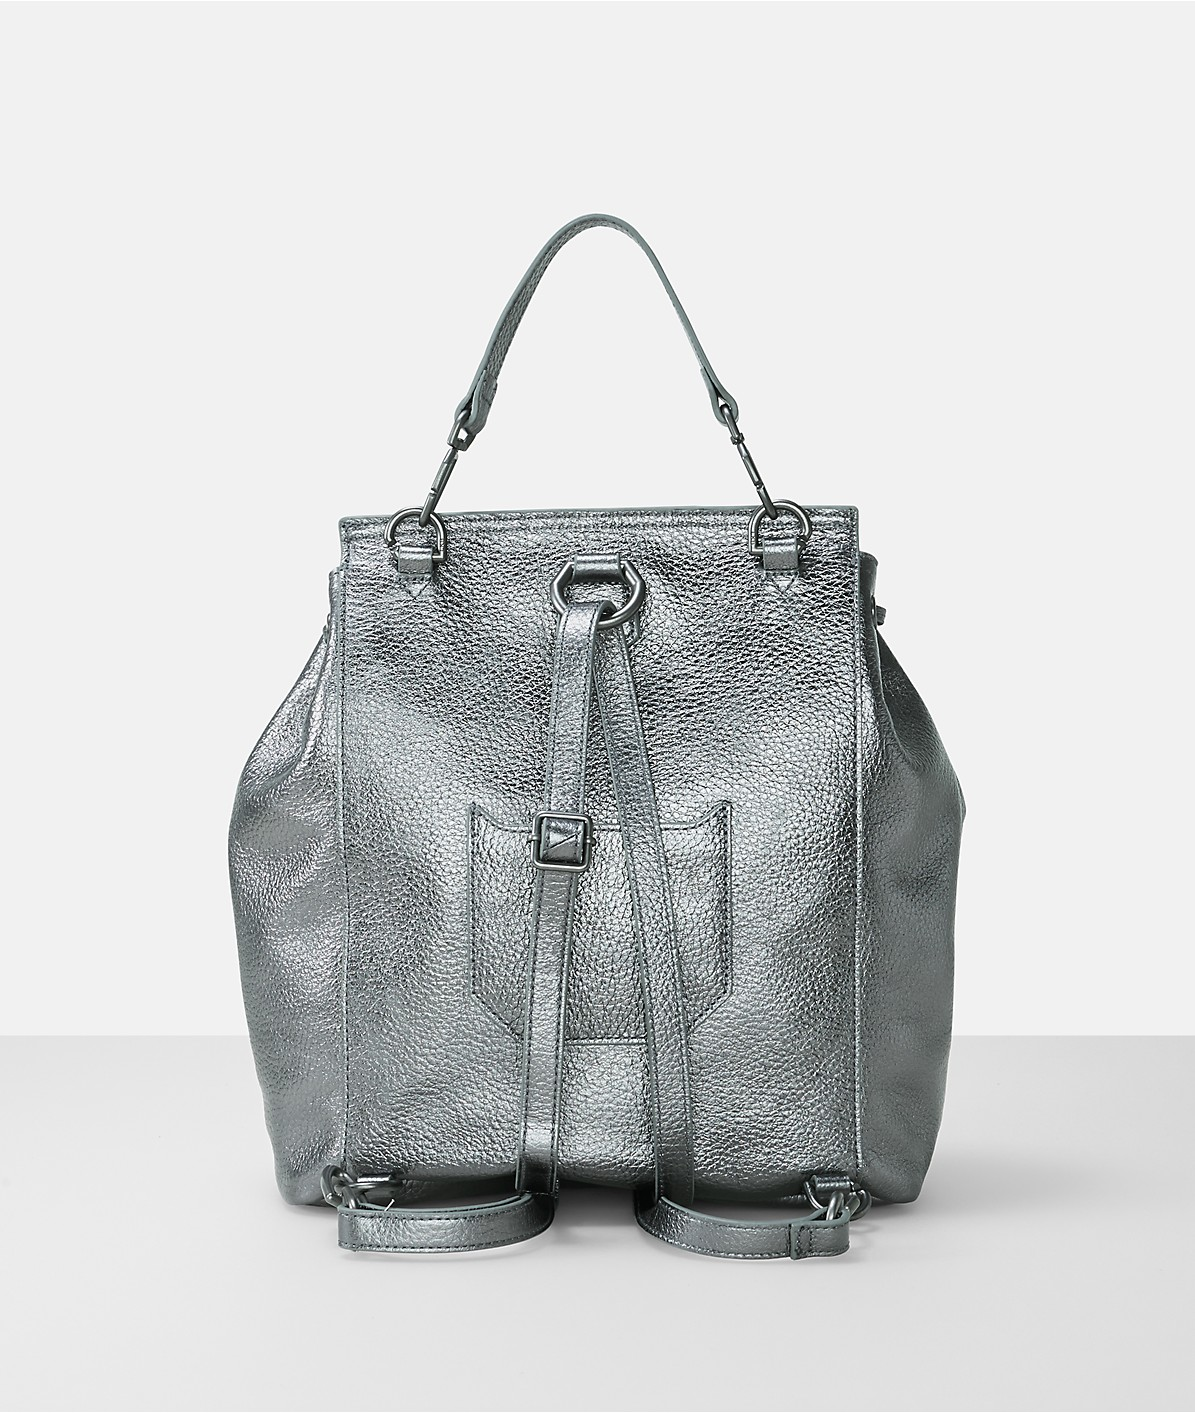 Rucksack with decorative details from liebeskind